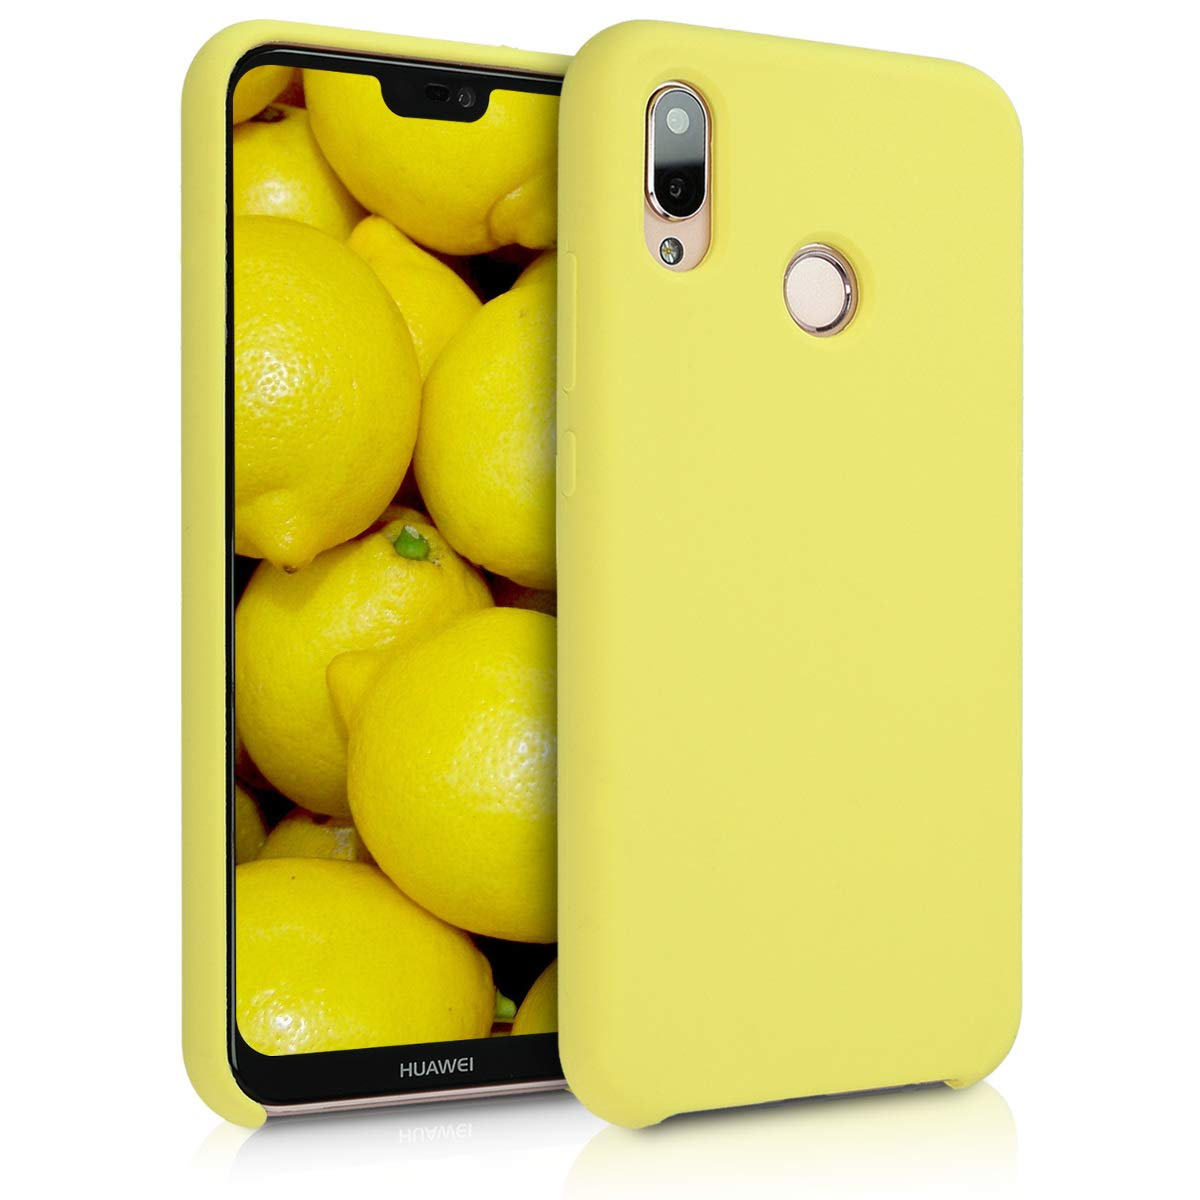 kwmobile TPU Silicone Case for Huawei P20 Lite - Soft Flexible Rubber Protective Cover - Pastel Yellow